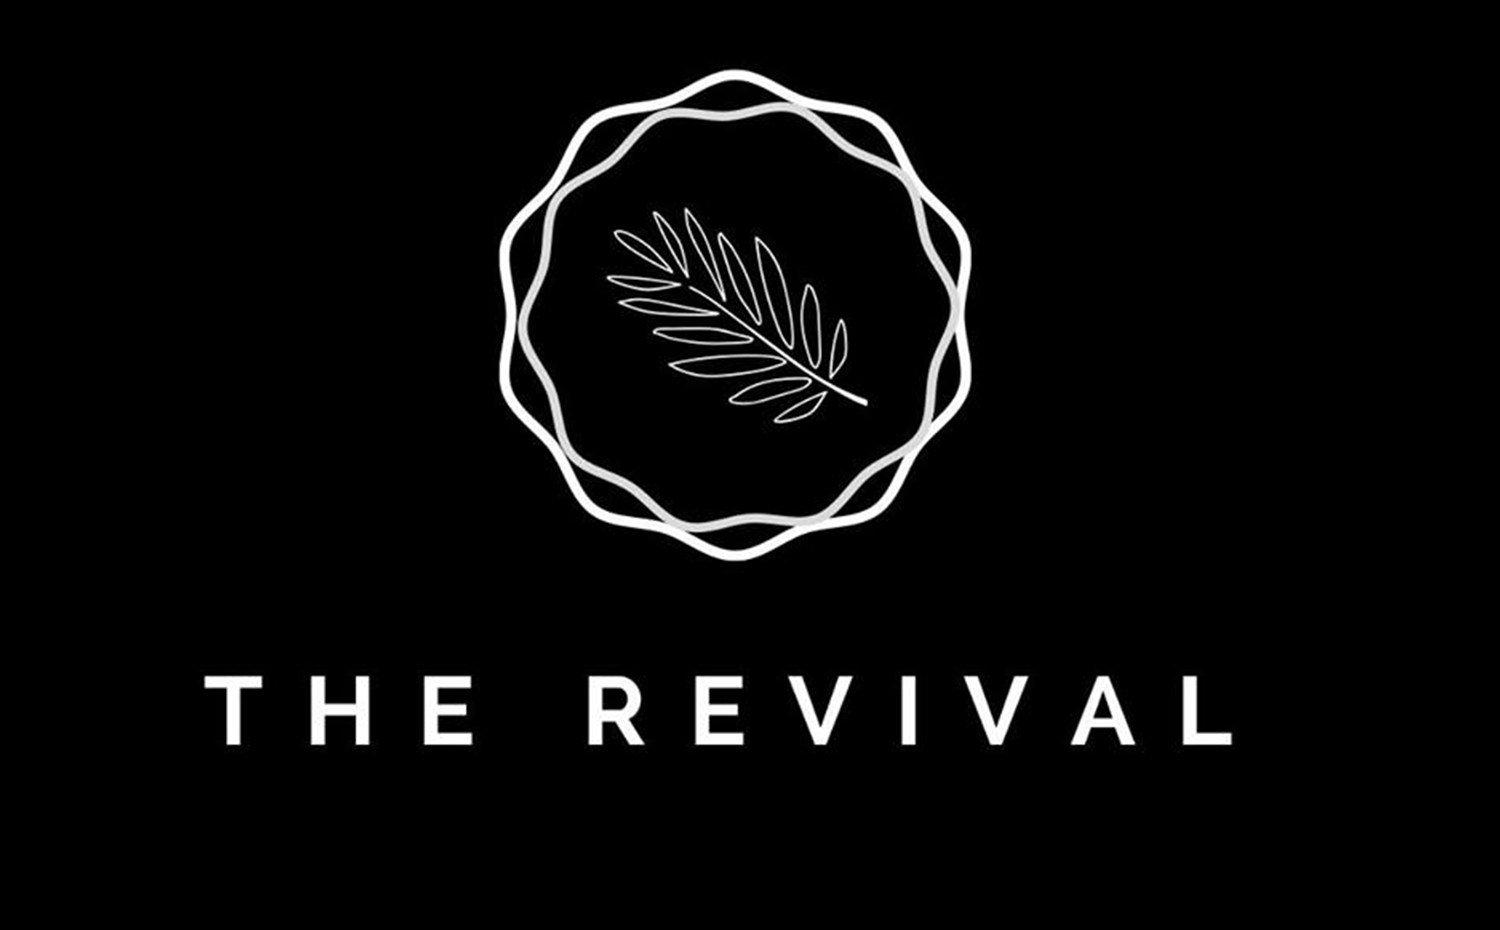 The Revival fashion show logo